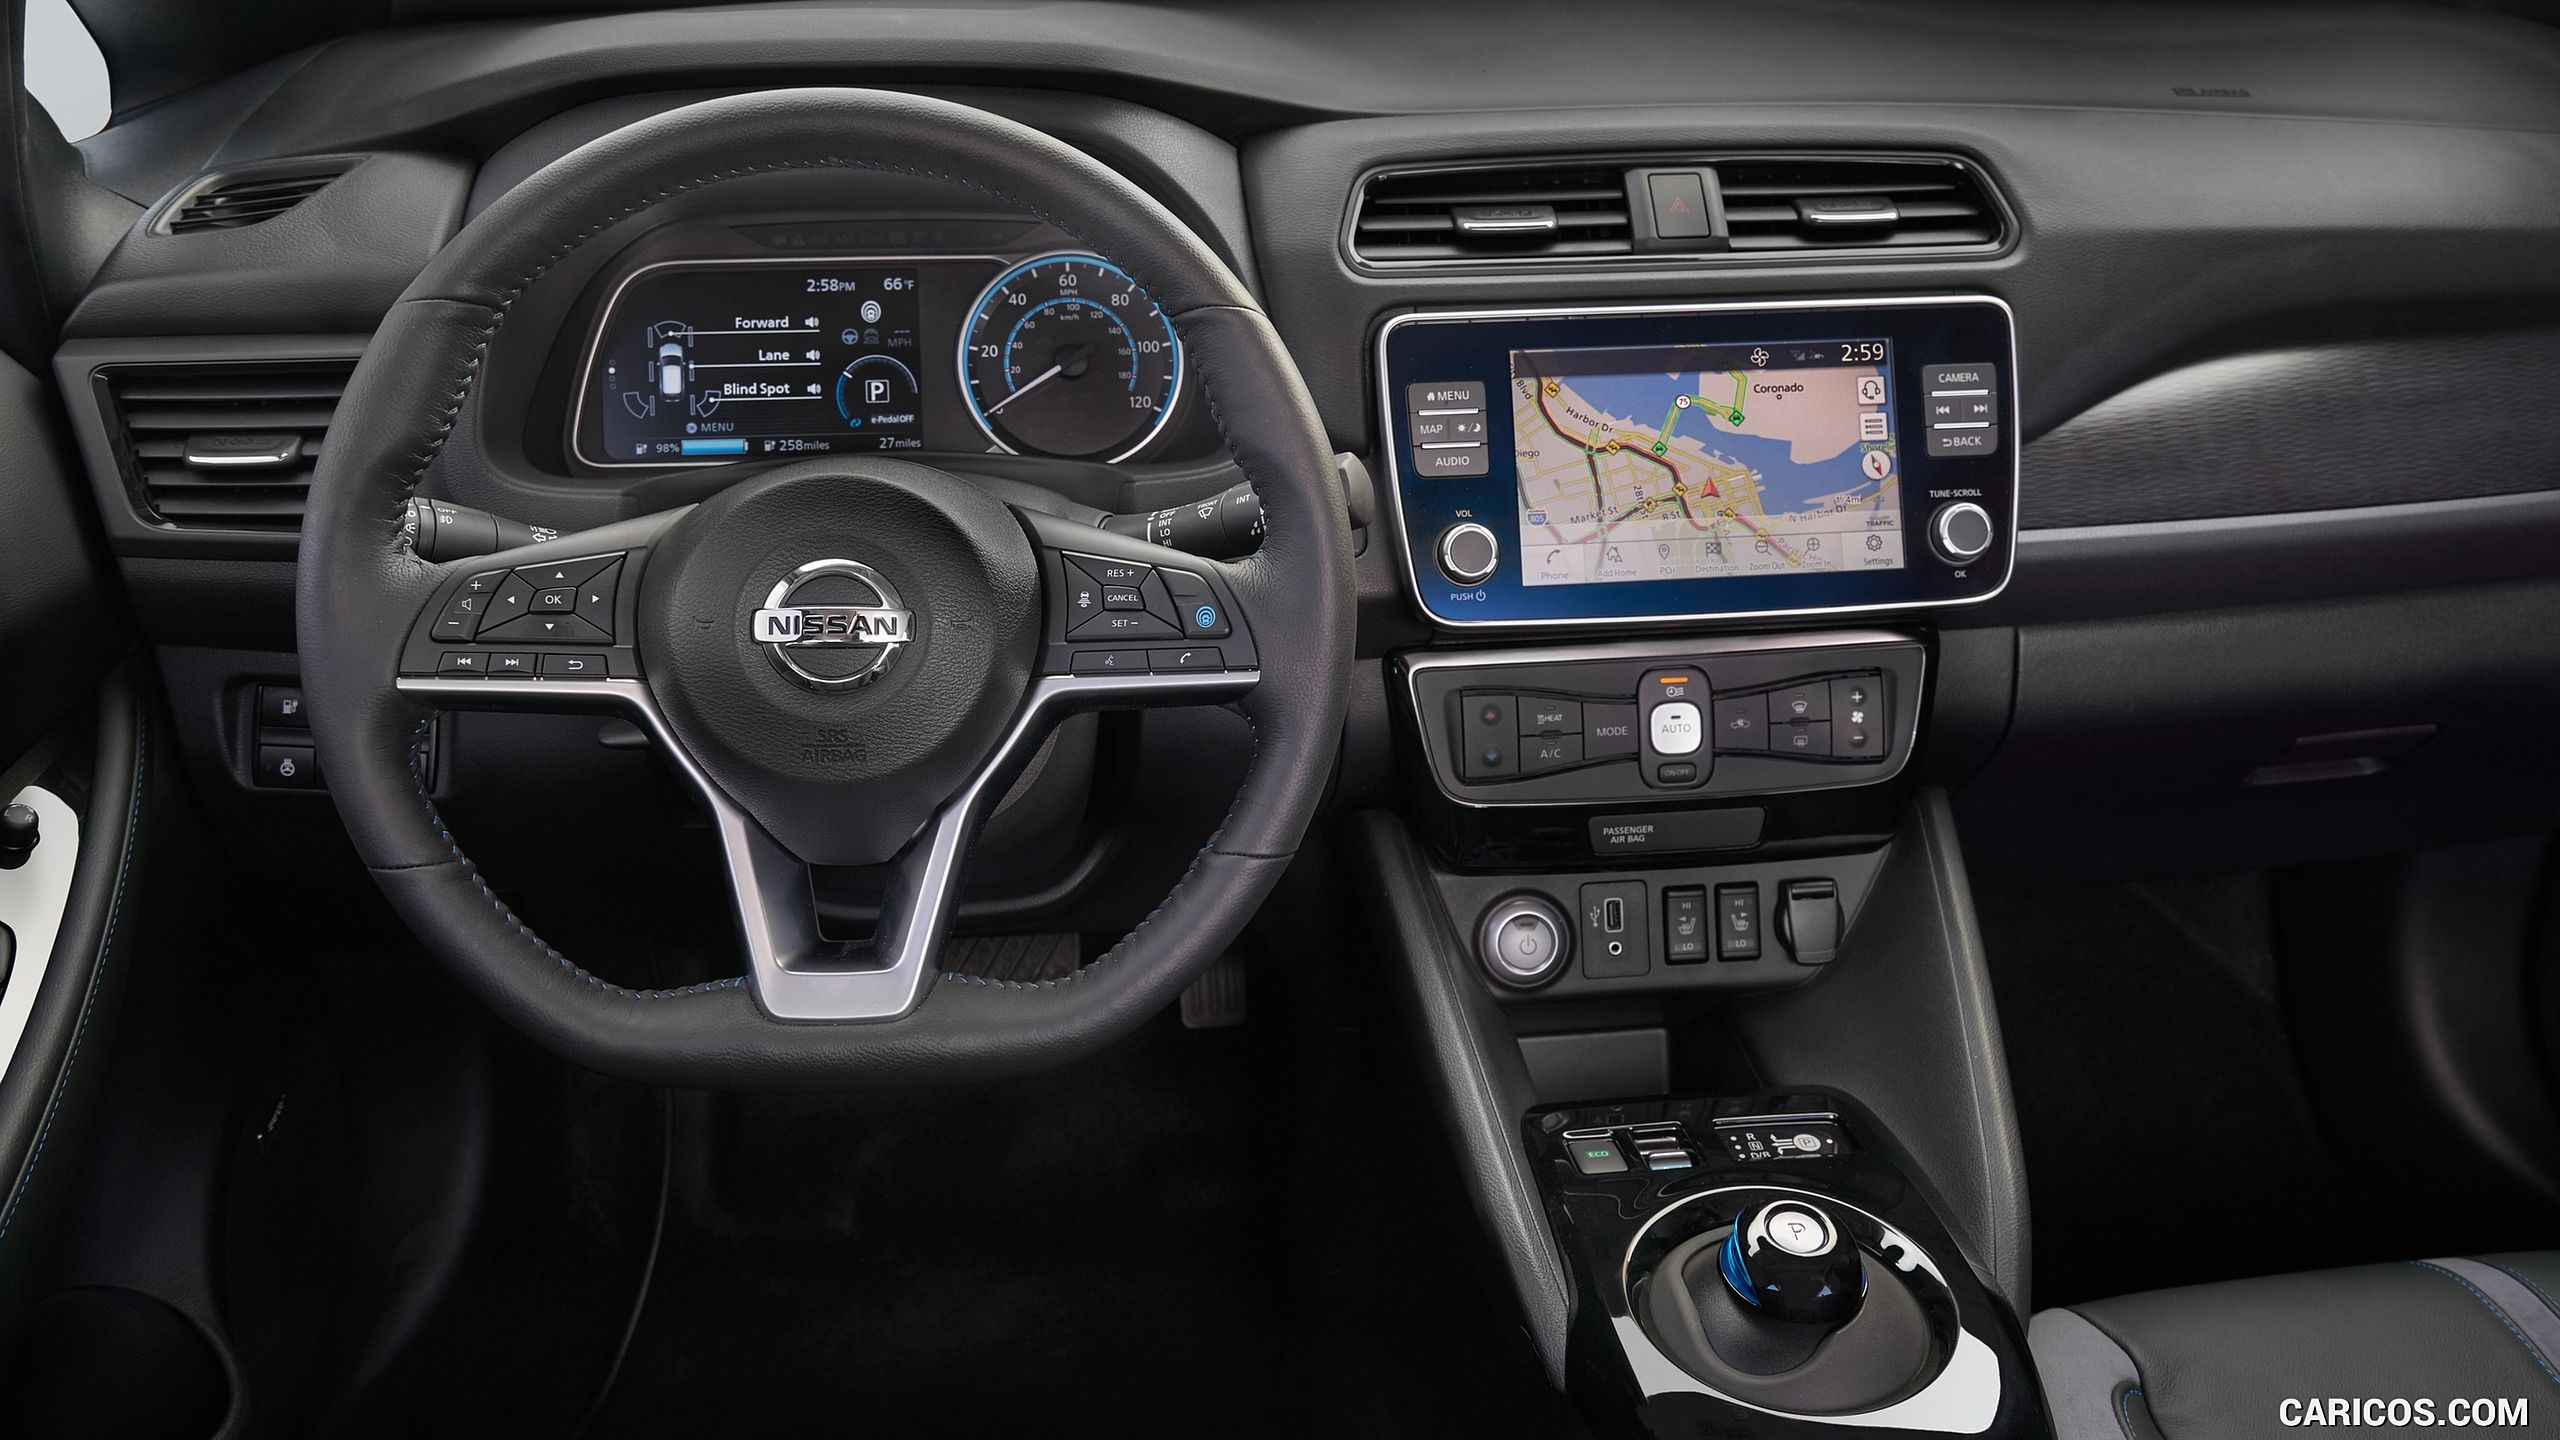 2019 Nissan Leaf E Interior Cockpit Hd In 2020 Nissan Leaf Nissan Nissan Leaf Interior